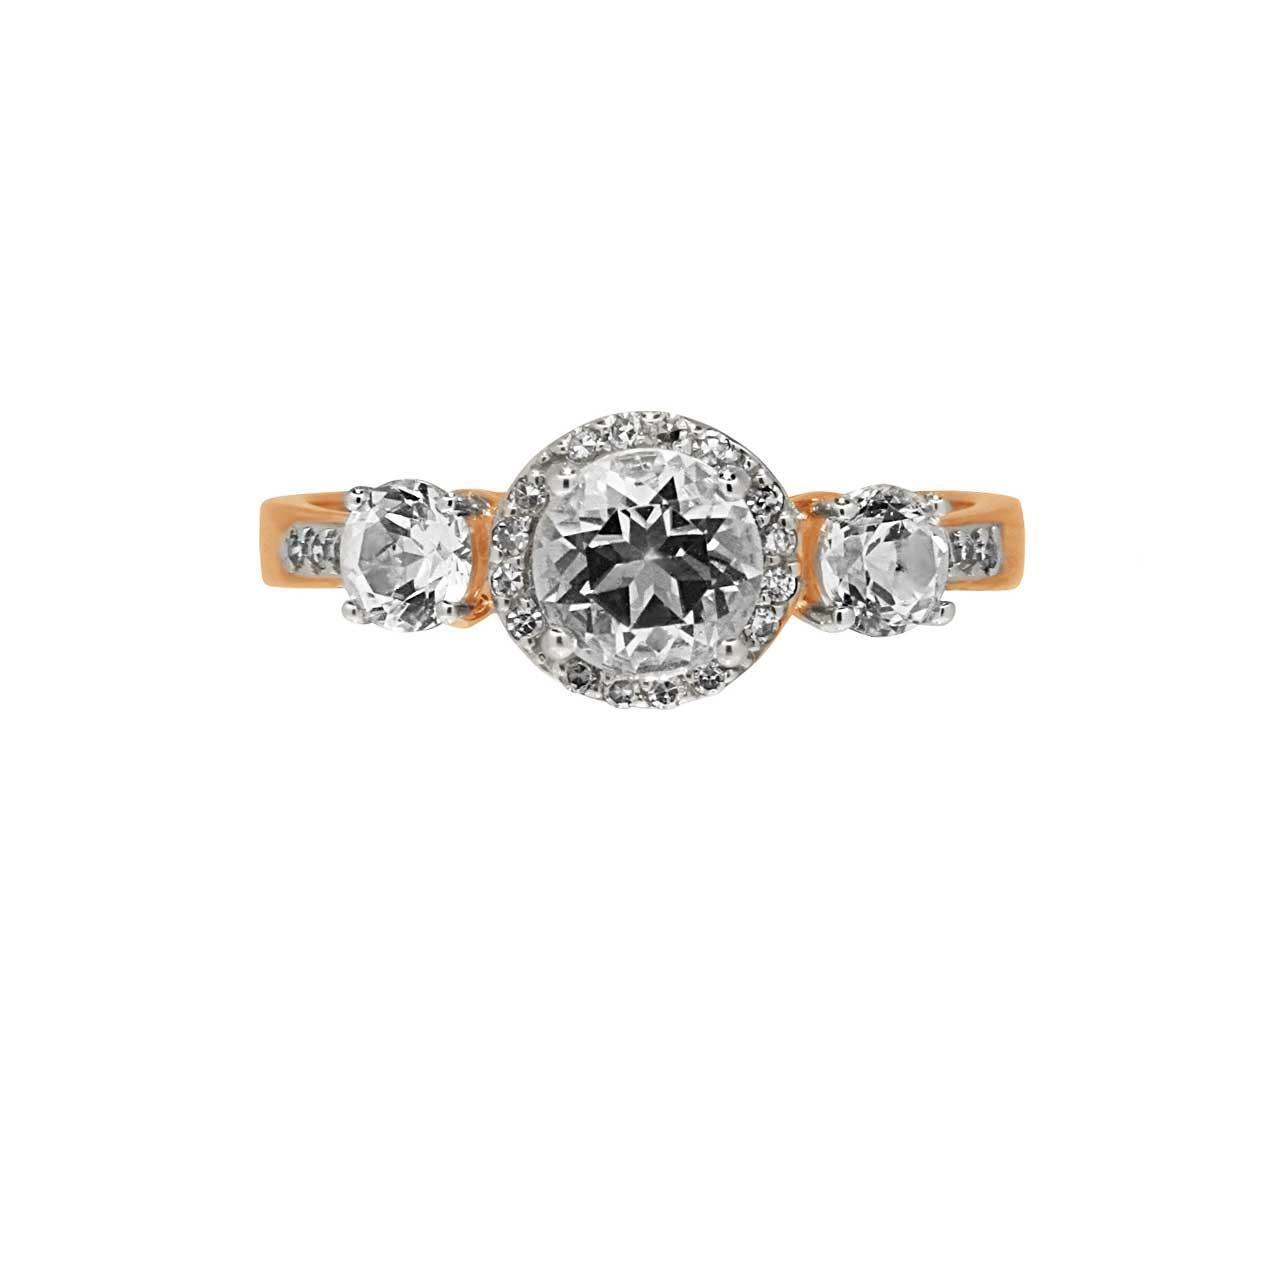 Topaz engagement ring 2